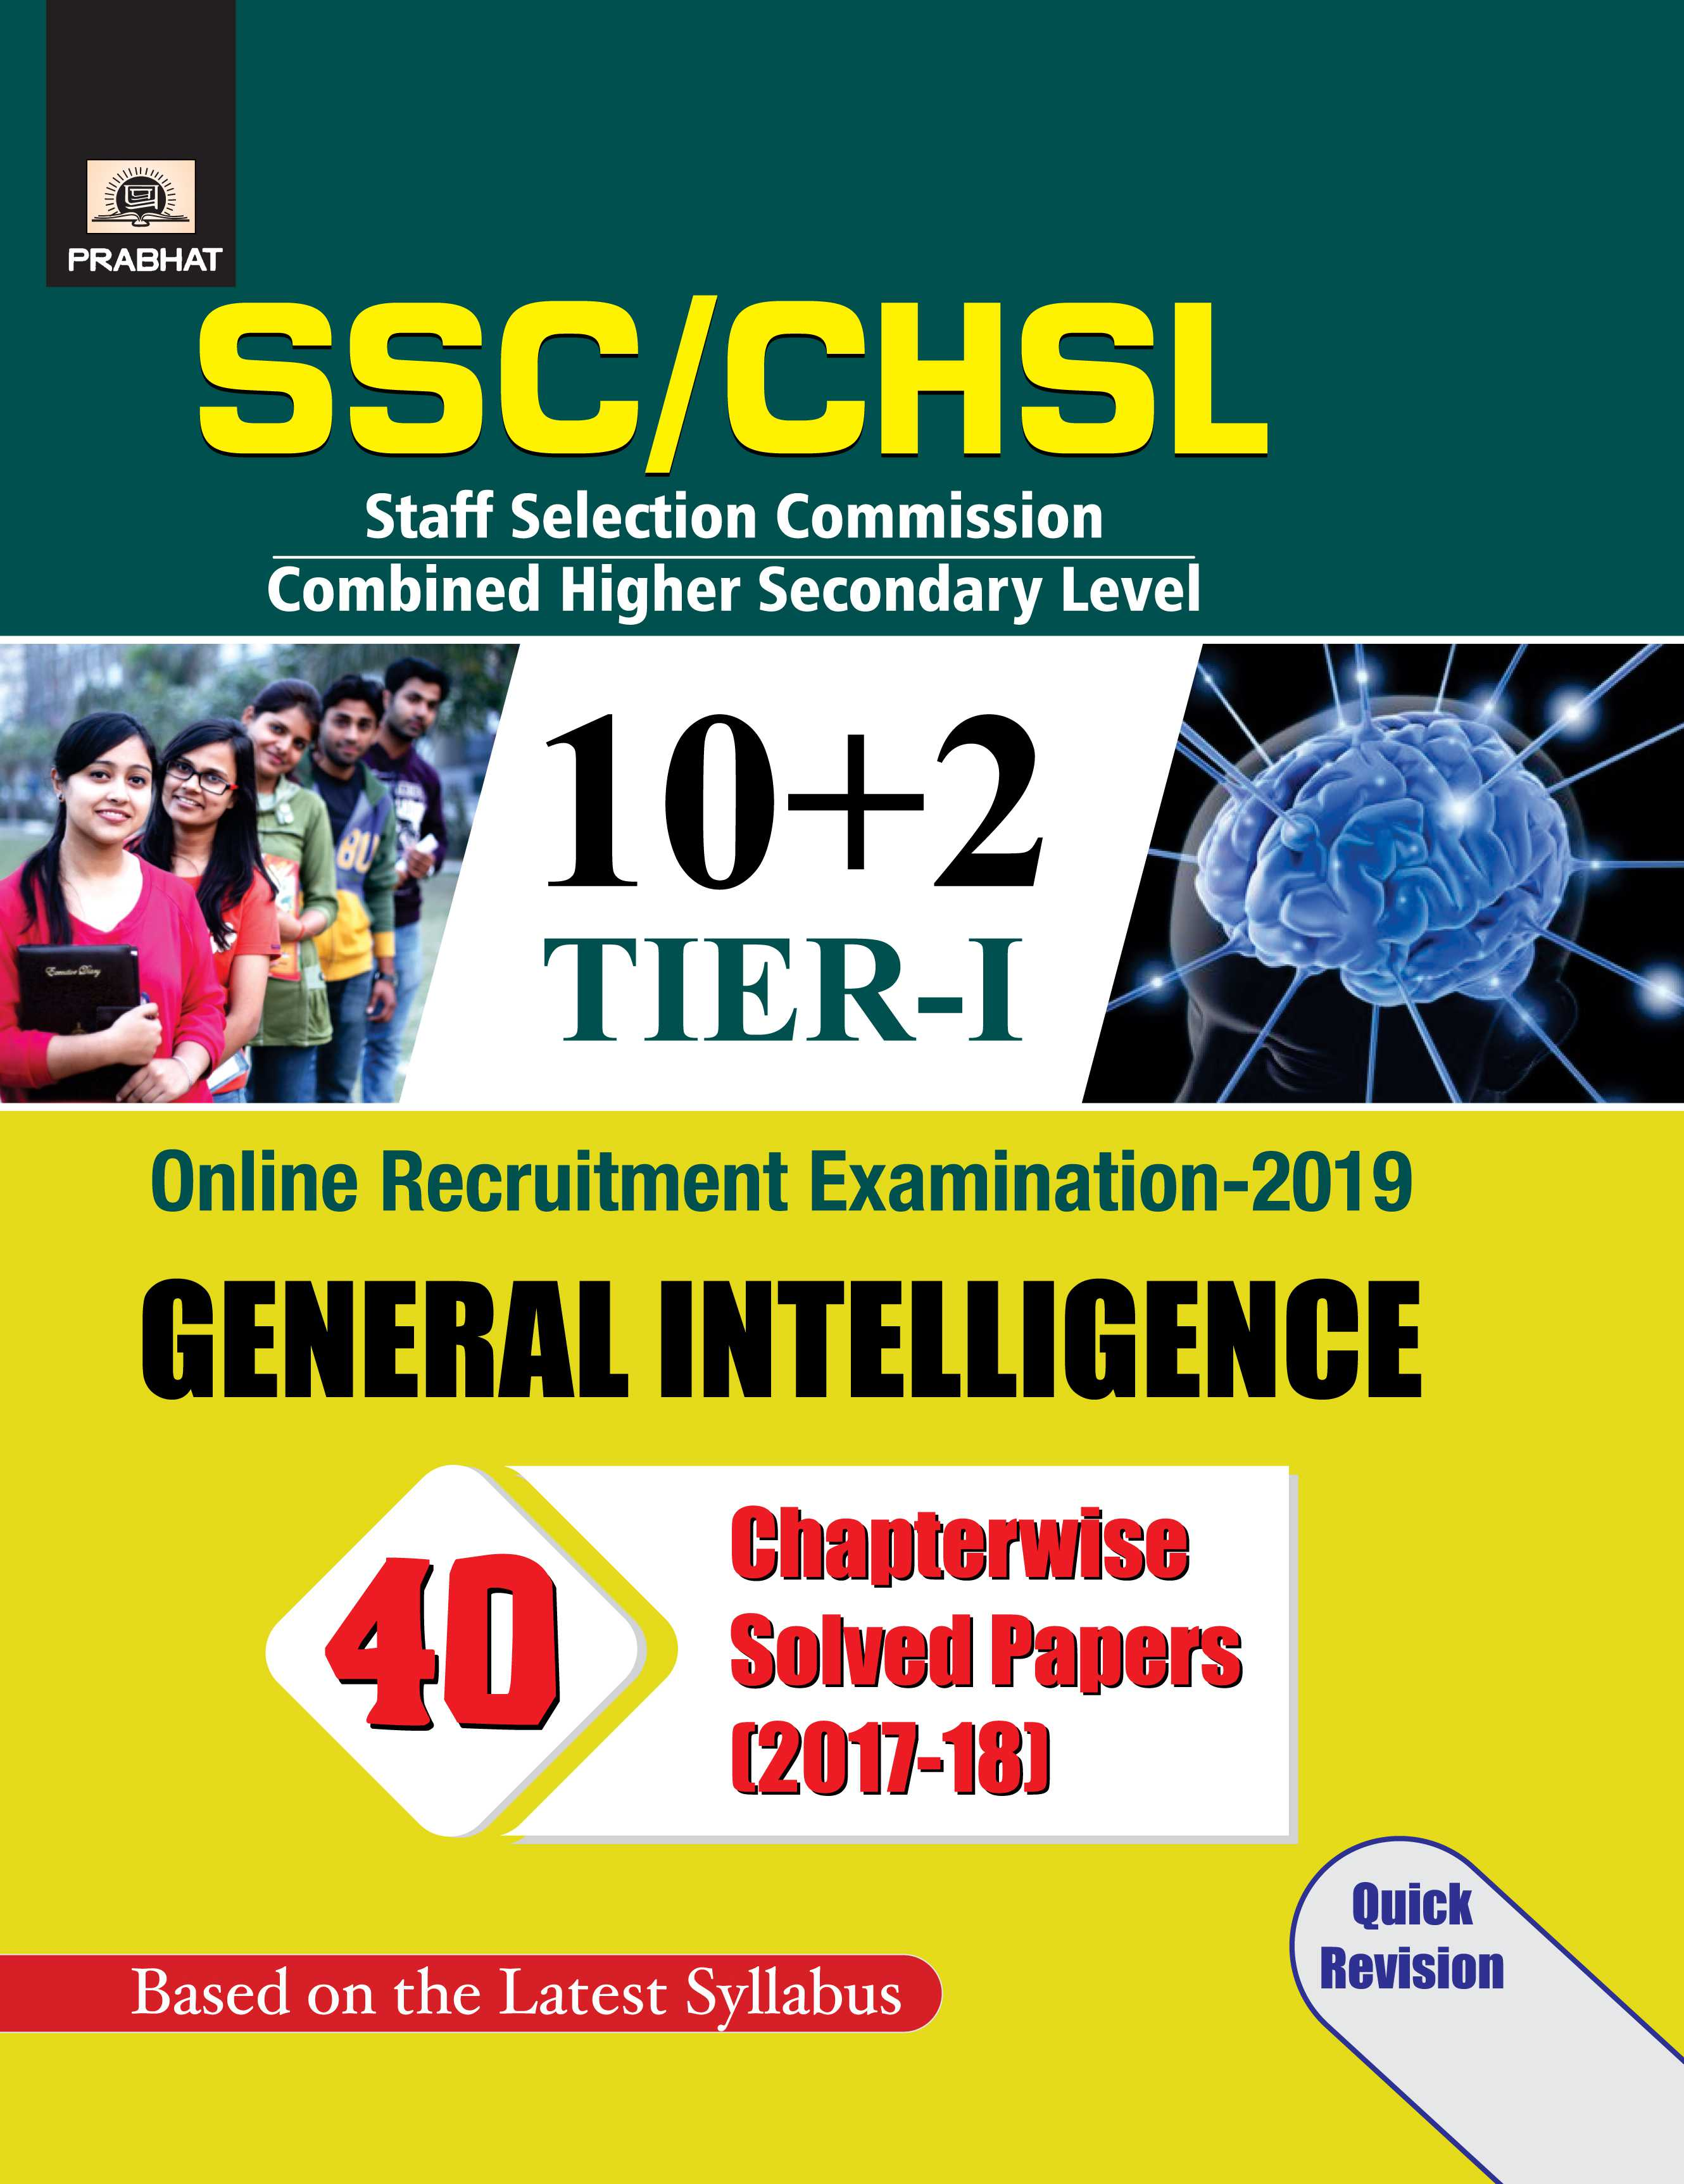 SSC CHSL Combined HIgher Secondry Level (10 + 2)  Tier-I, Online Recruitment Examination, 2019 General Intelligence 40 ChapterWise Solved Papers (PB)